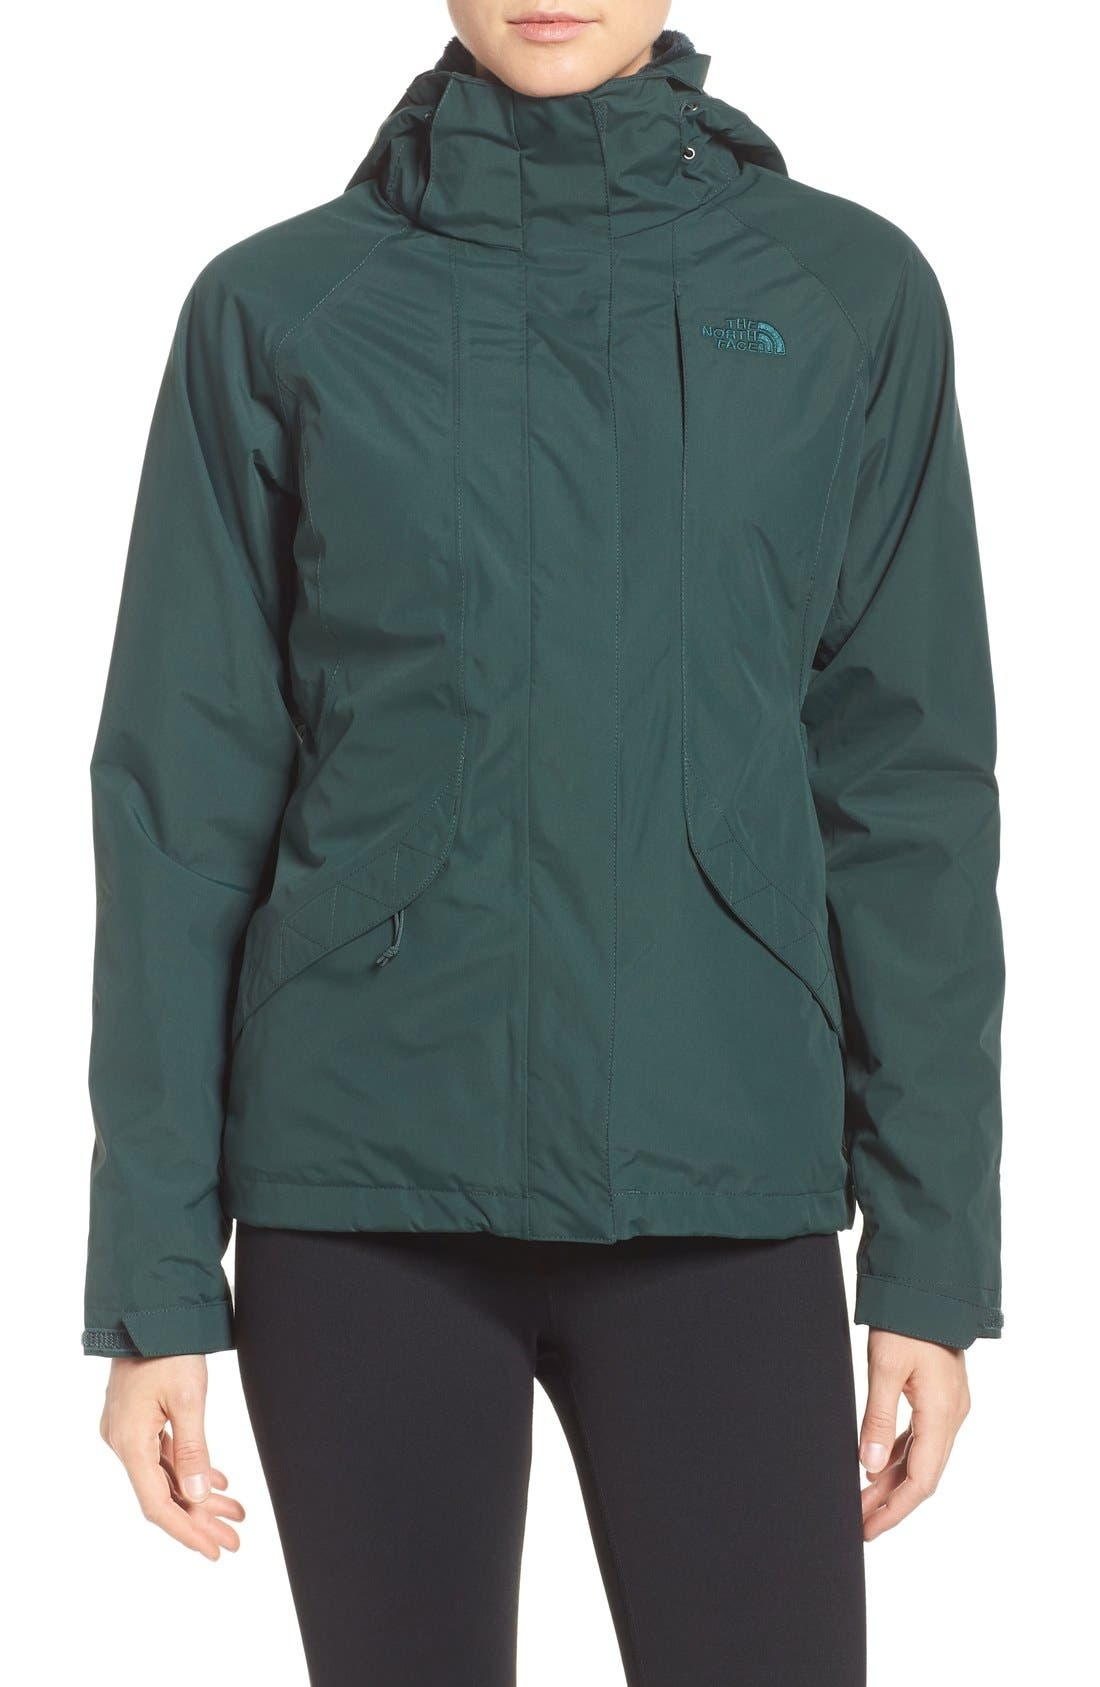 Boundary Triclimate<sup>®</sup> 3-in-1 Jacket,                             Main thumbnail 4, color,